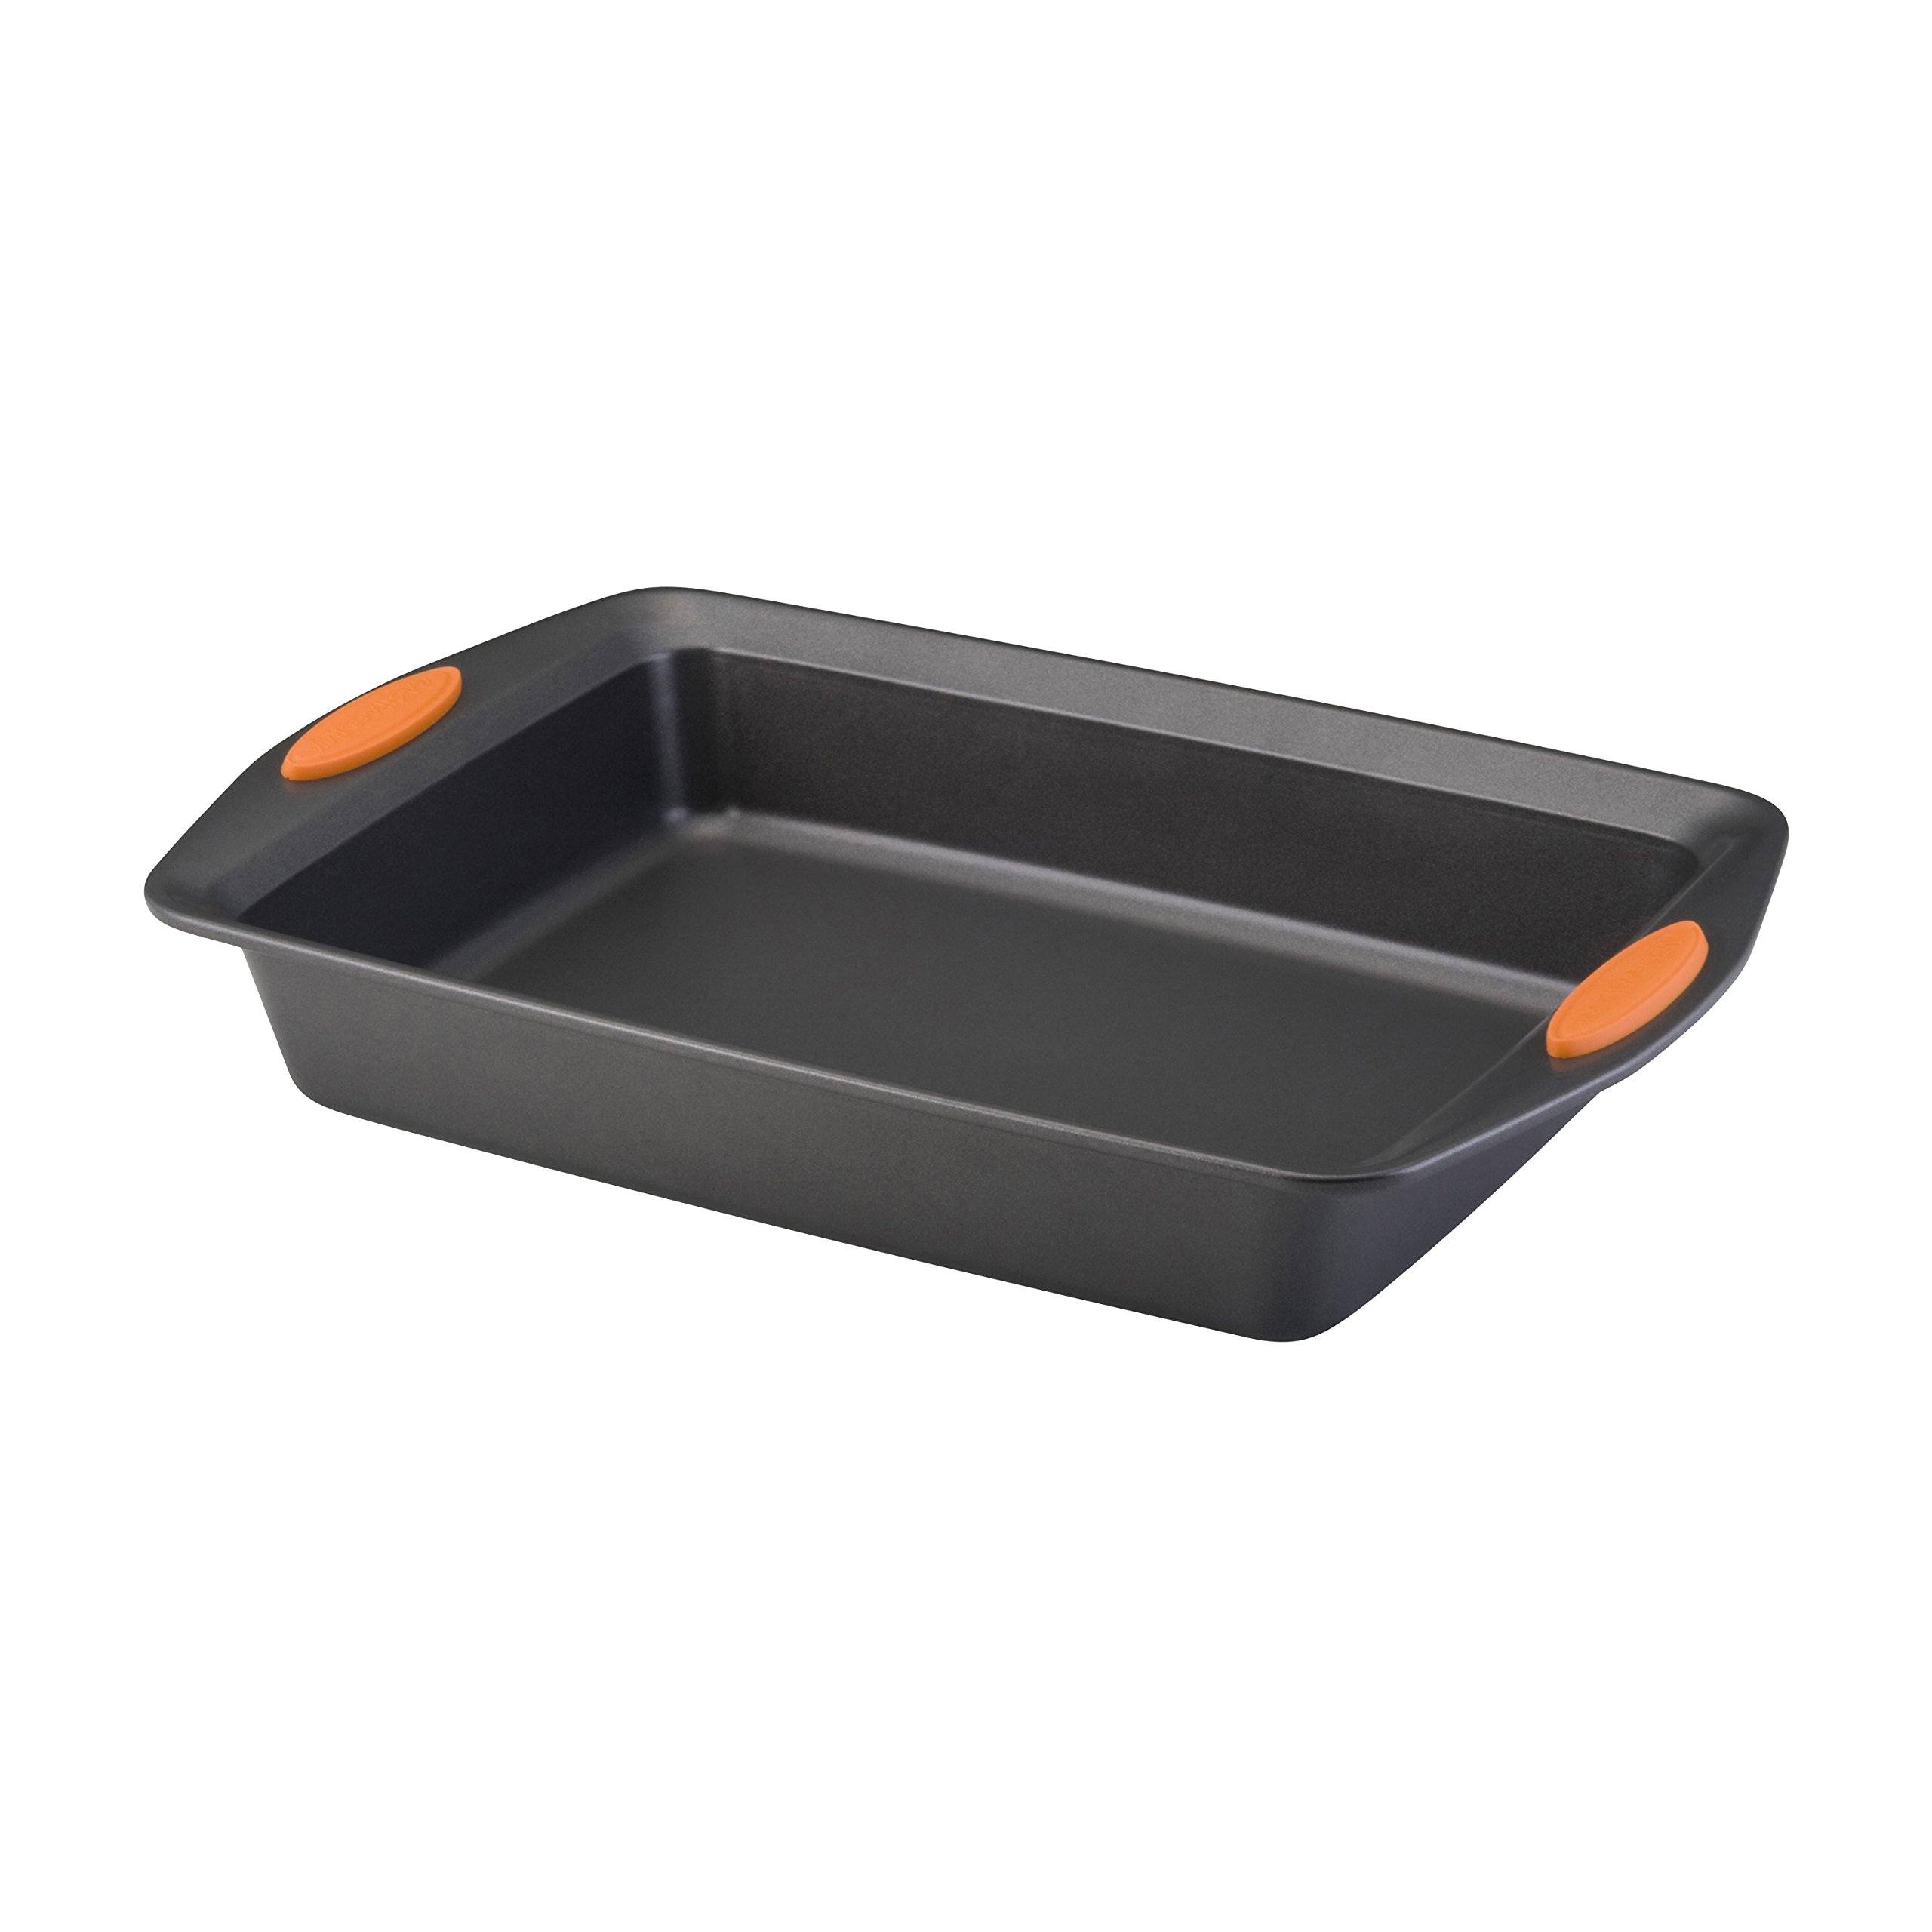 Rachael Ray Yum-o! Nonstick Bakeware 9-Inch by 13-Inch Oven Lovin' Rectangle Cake Pan, Gray with Orange Handles